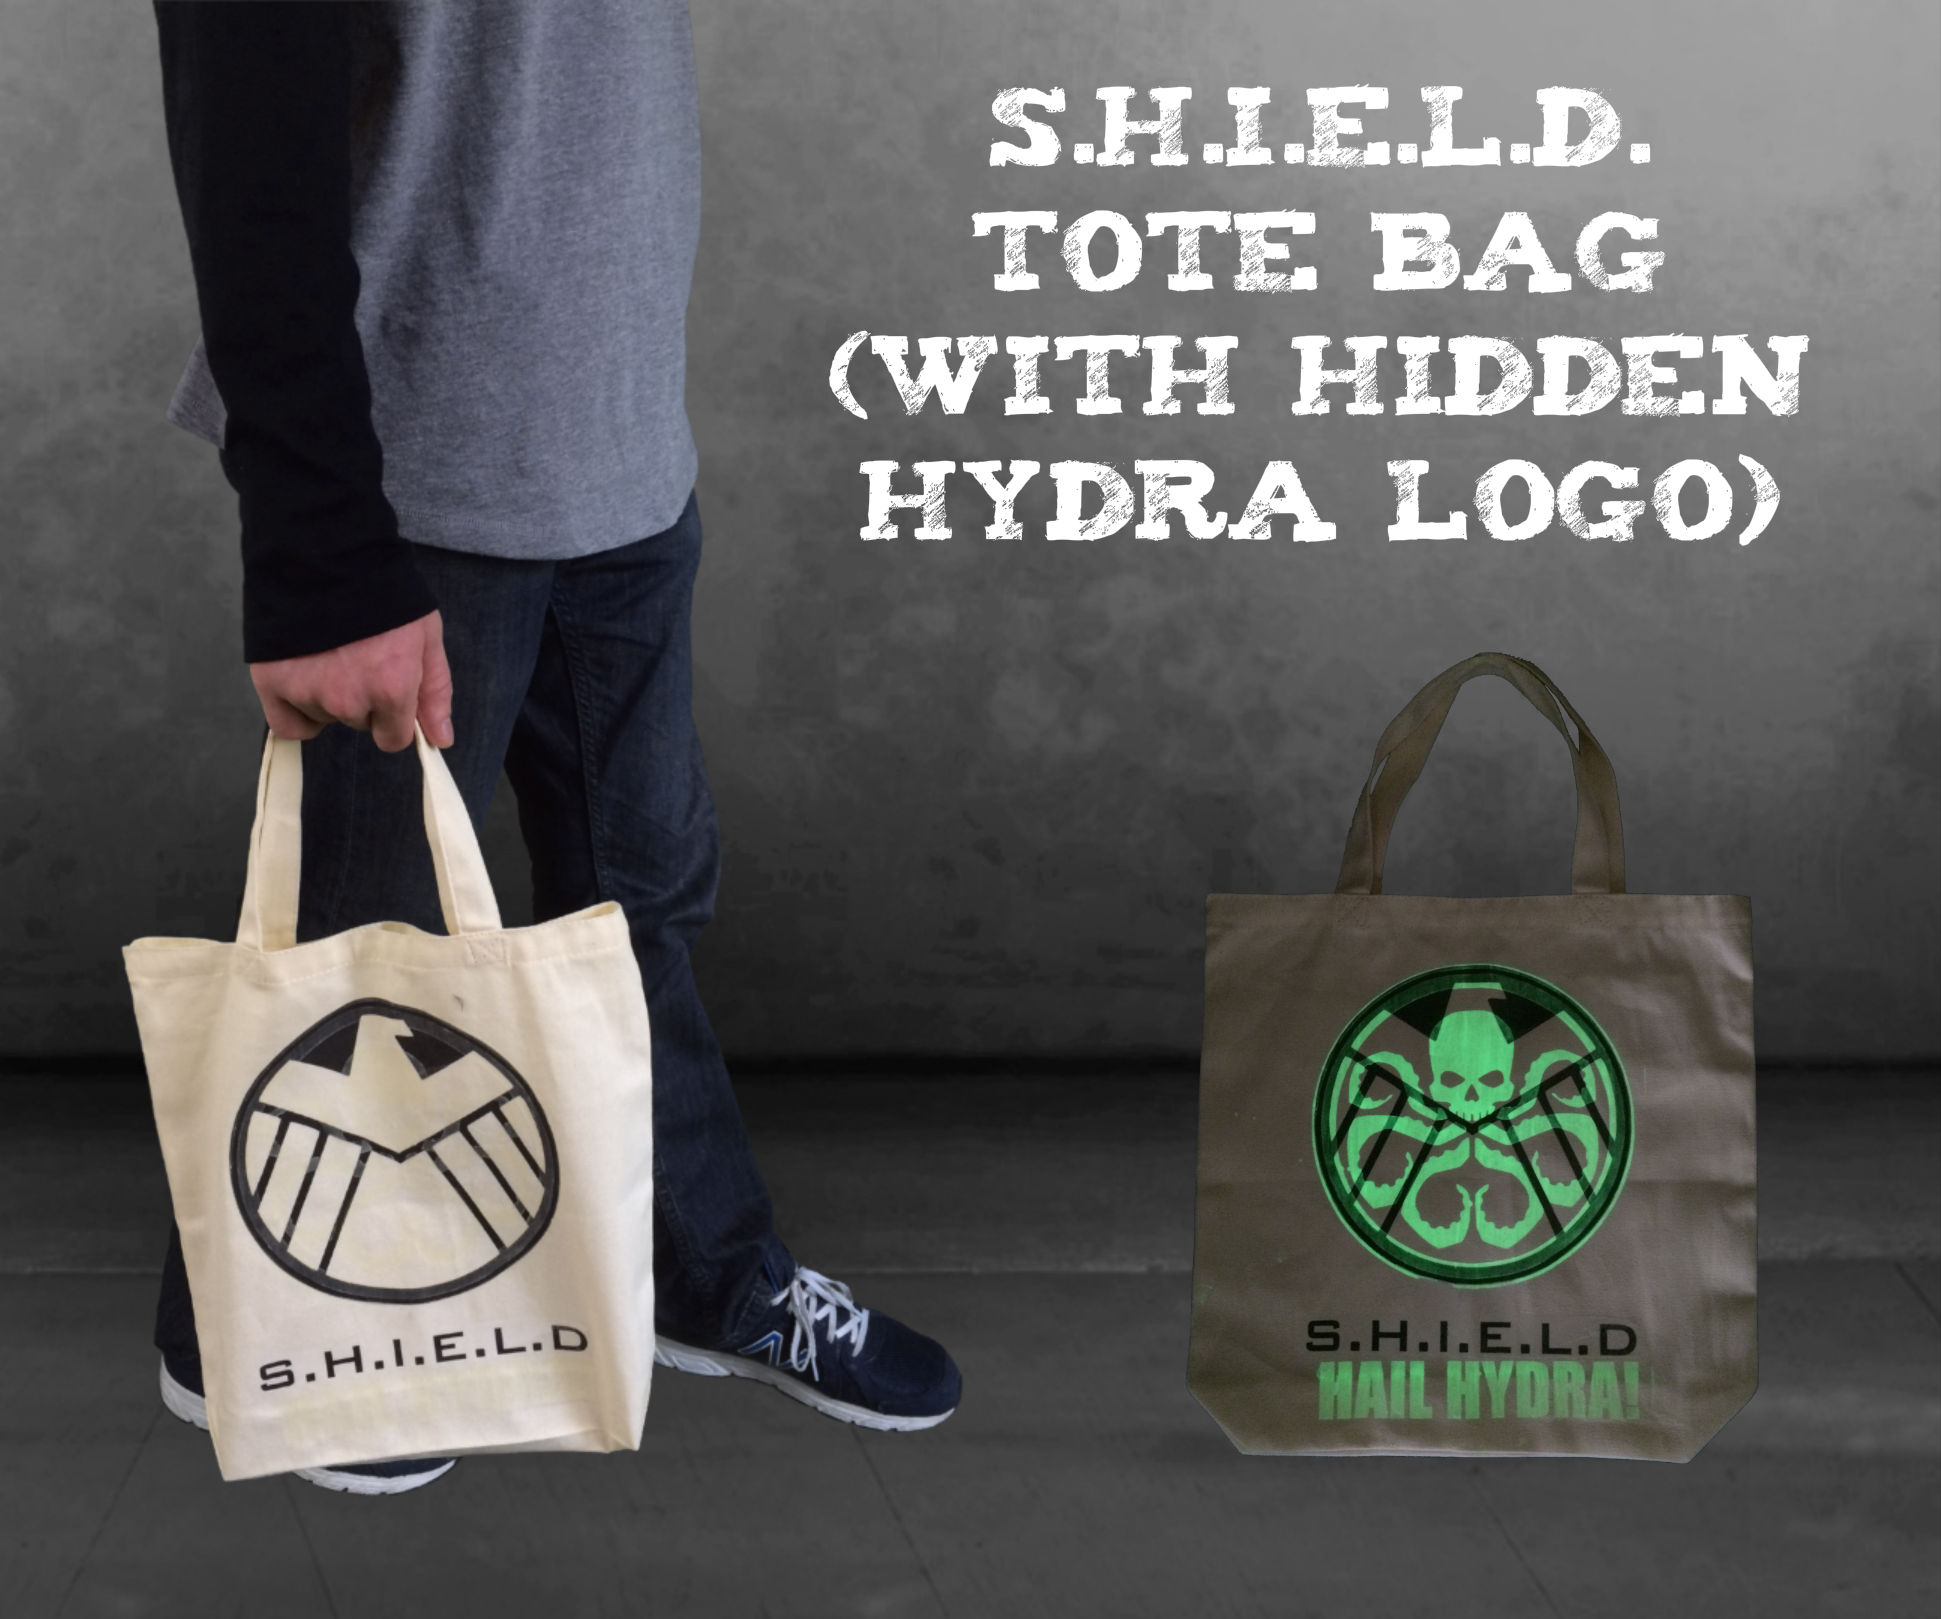 S.H.I.E.L.D. Tote Bag (With Hidden Hydra Logo)